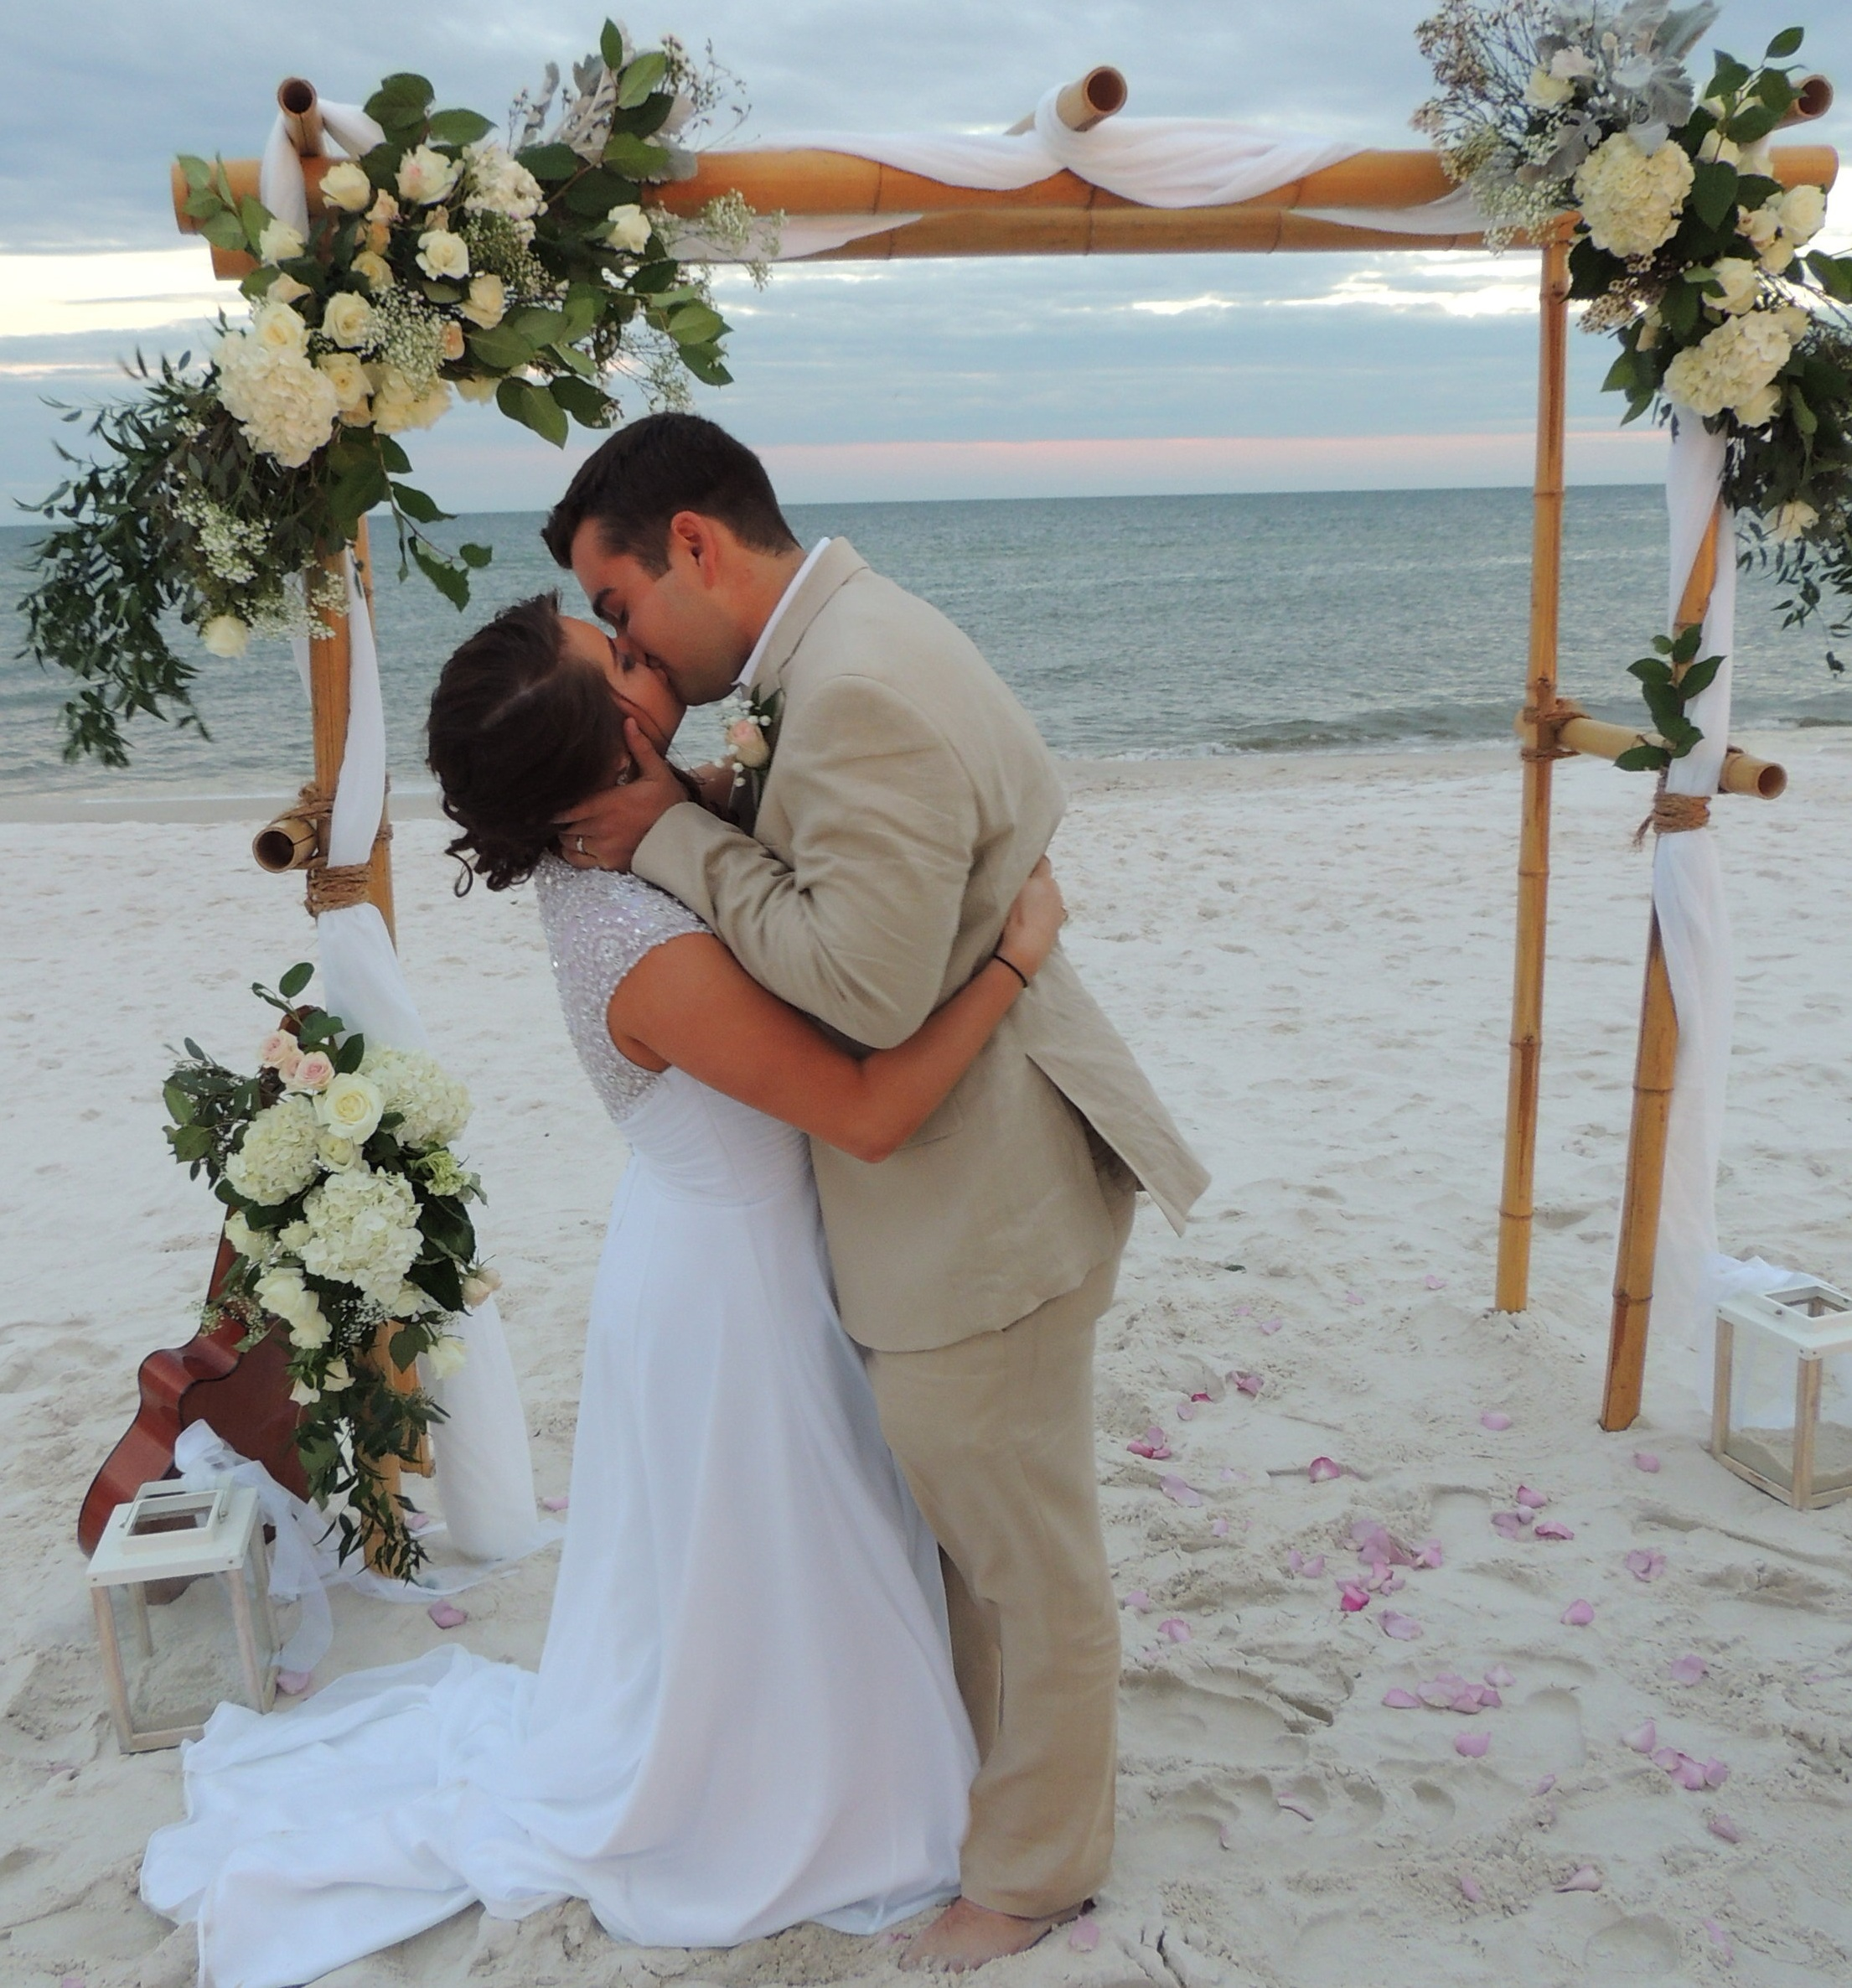 """Simple+ - Needing more than a simple elopement or beach ceremony? We have arch, photos, flowers, decor and other simple wedding needs.We often hear """"Short and Sweet"""" but that can change dramatically with each couple. Whatever your plans include, we can help!Click here for pricing info."""